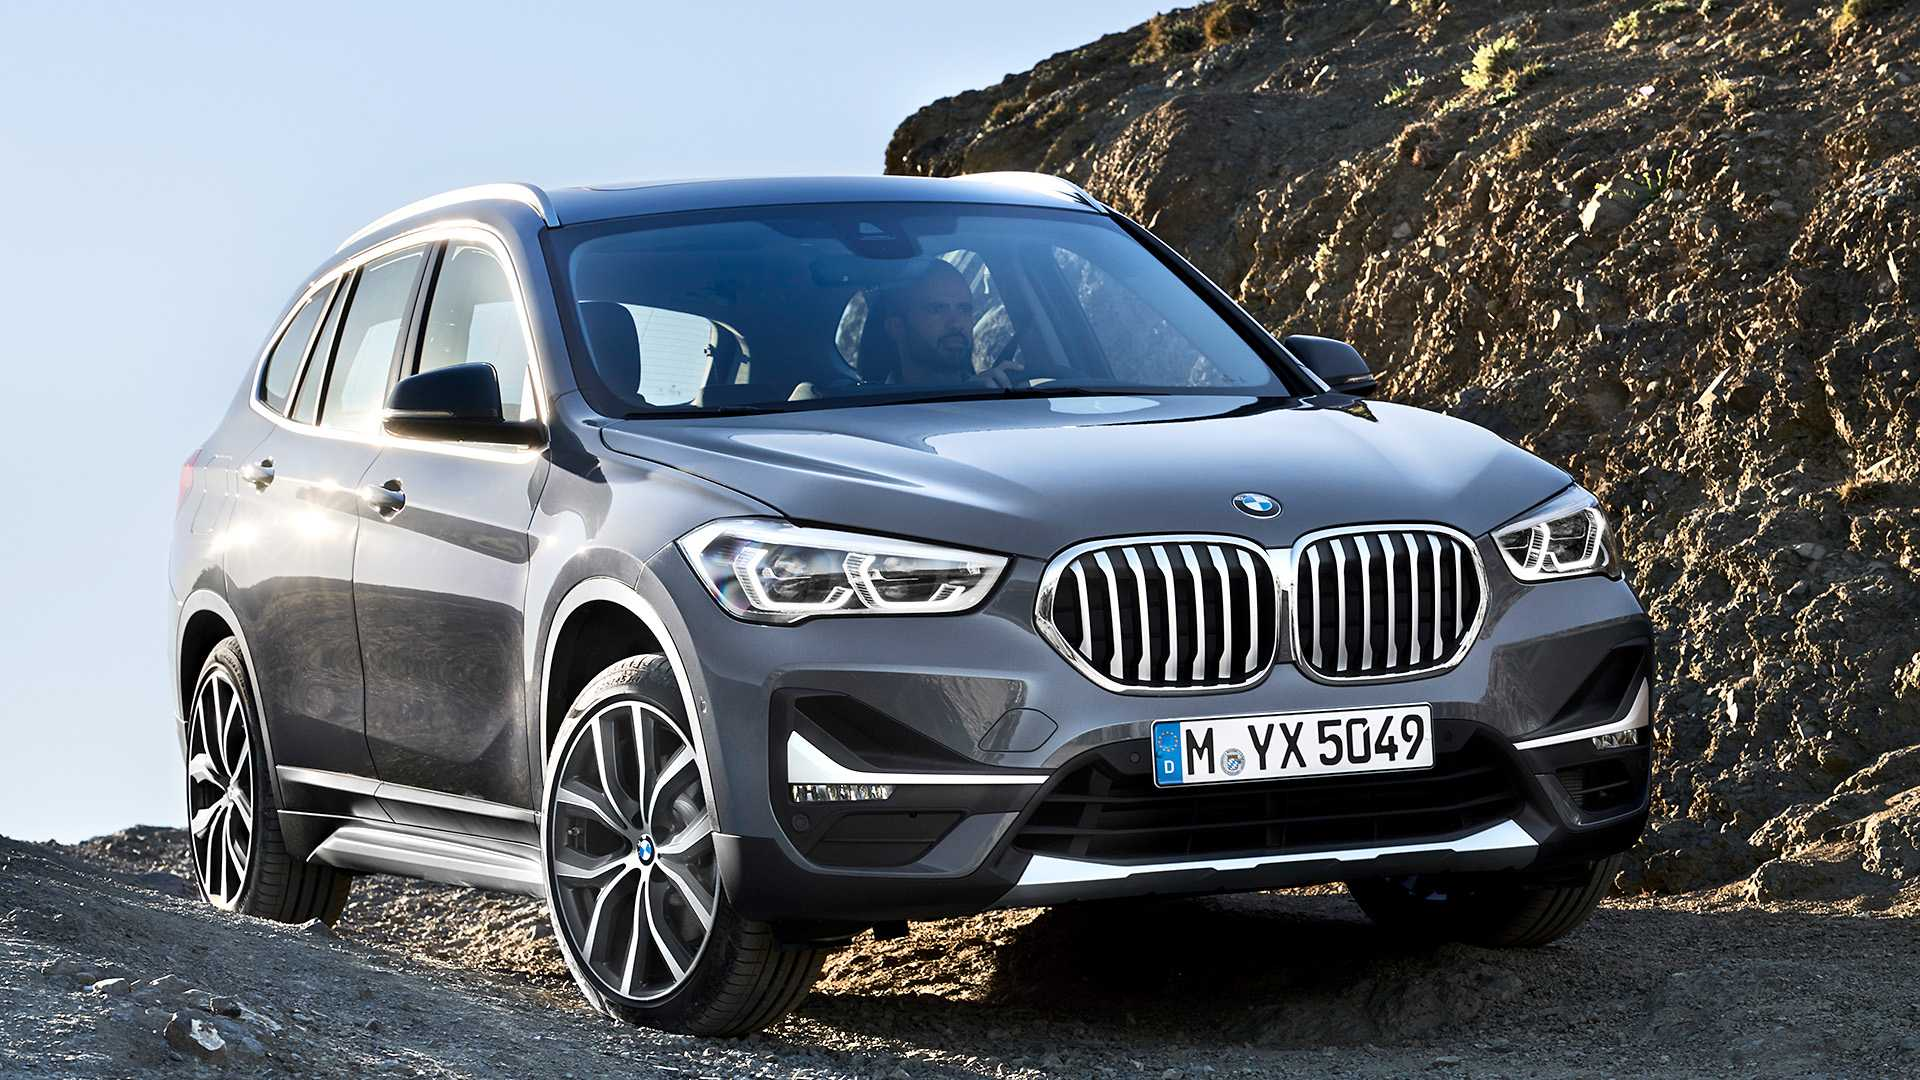 56 The Best Bmw X1 2020 Facelift Wallpaper